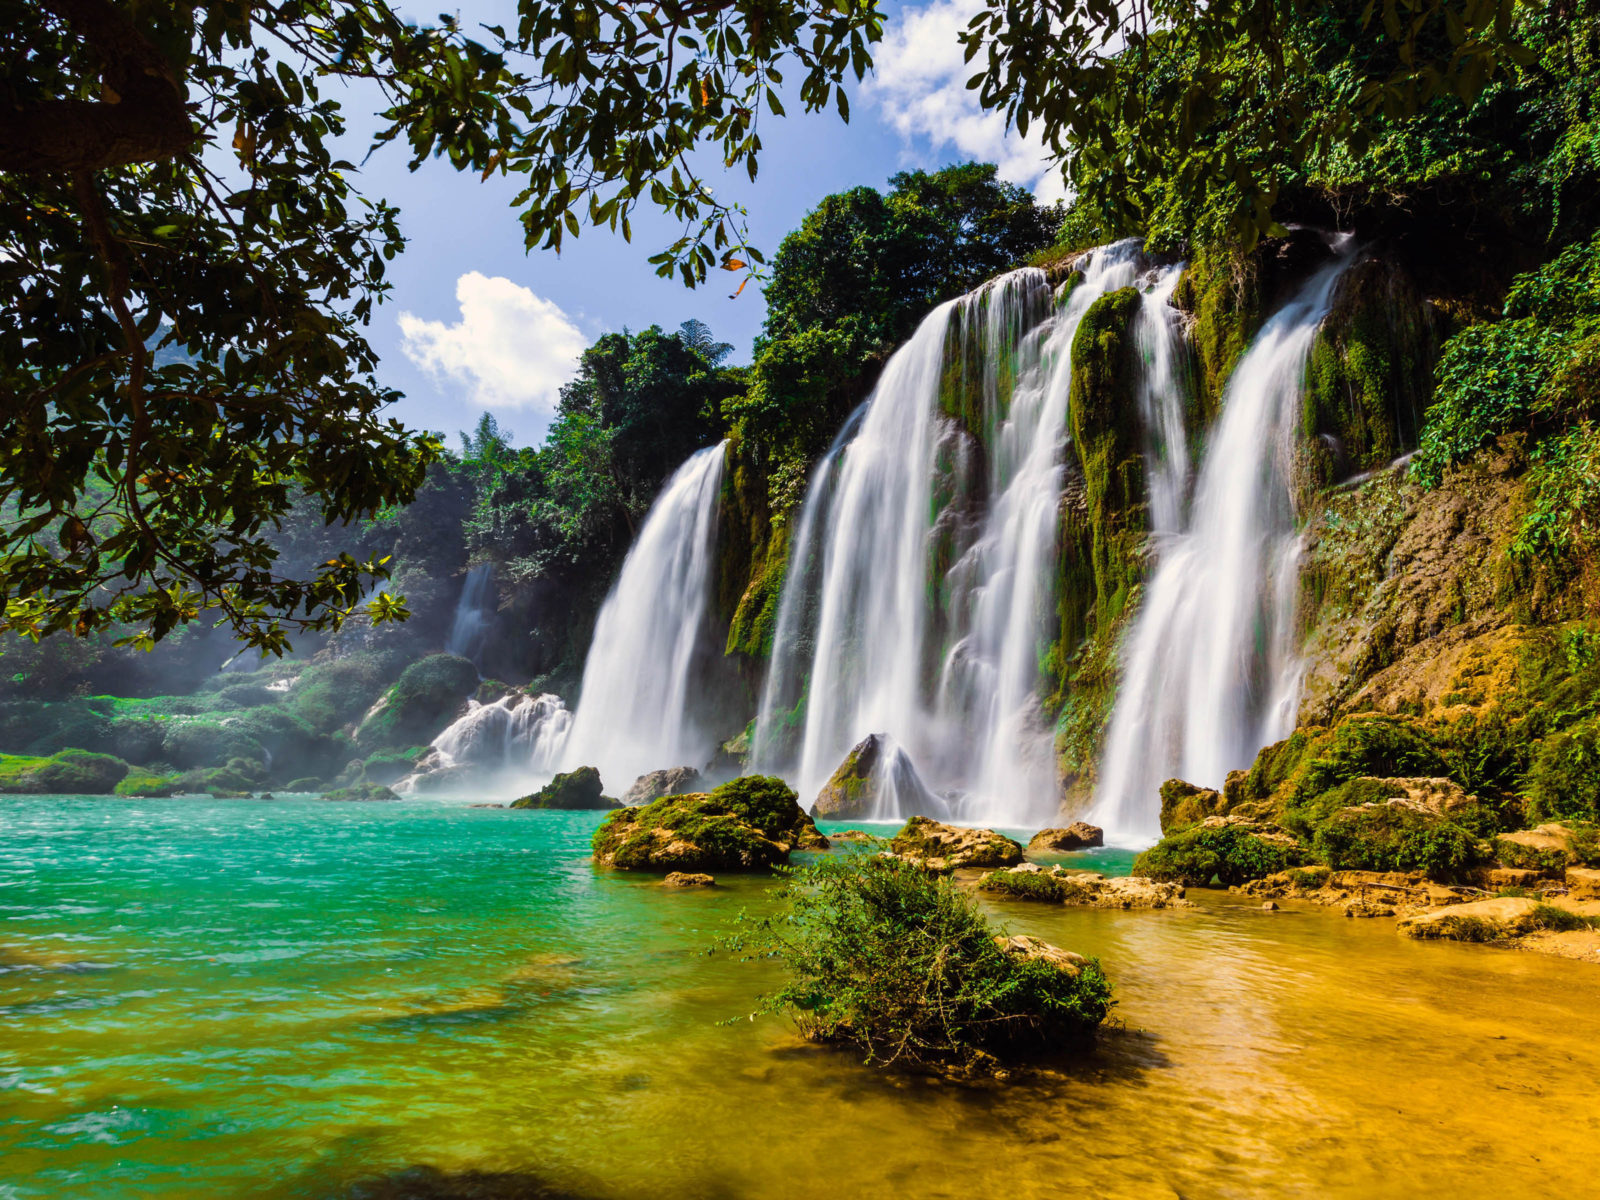 Beautiful Cars Wallpapers Free Download Ban Gioc Waterfall In China And Vietnam 4k Wallpapers Hd